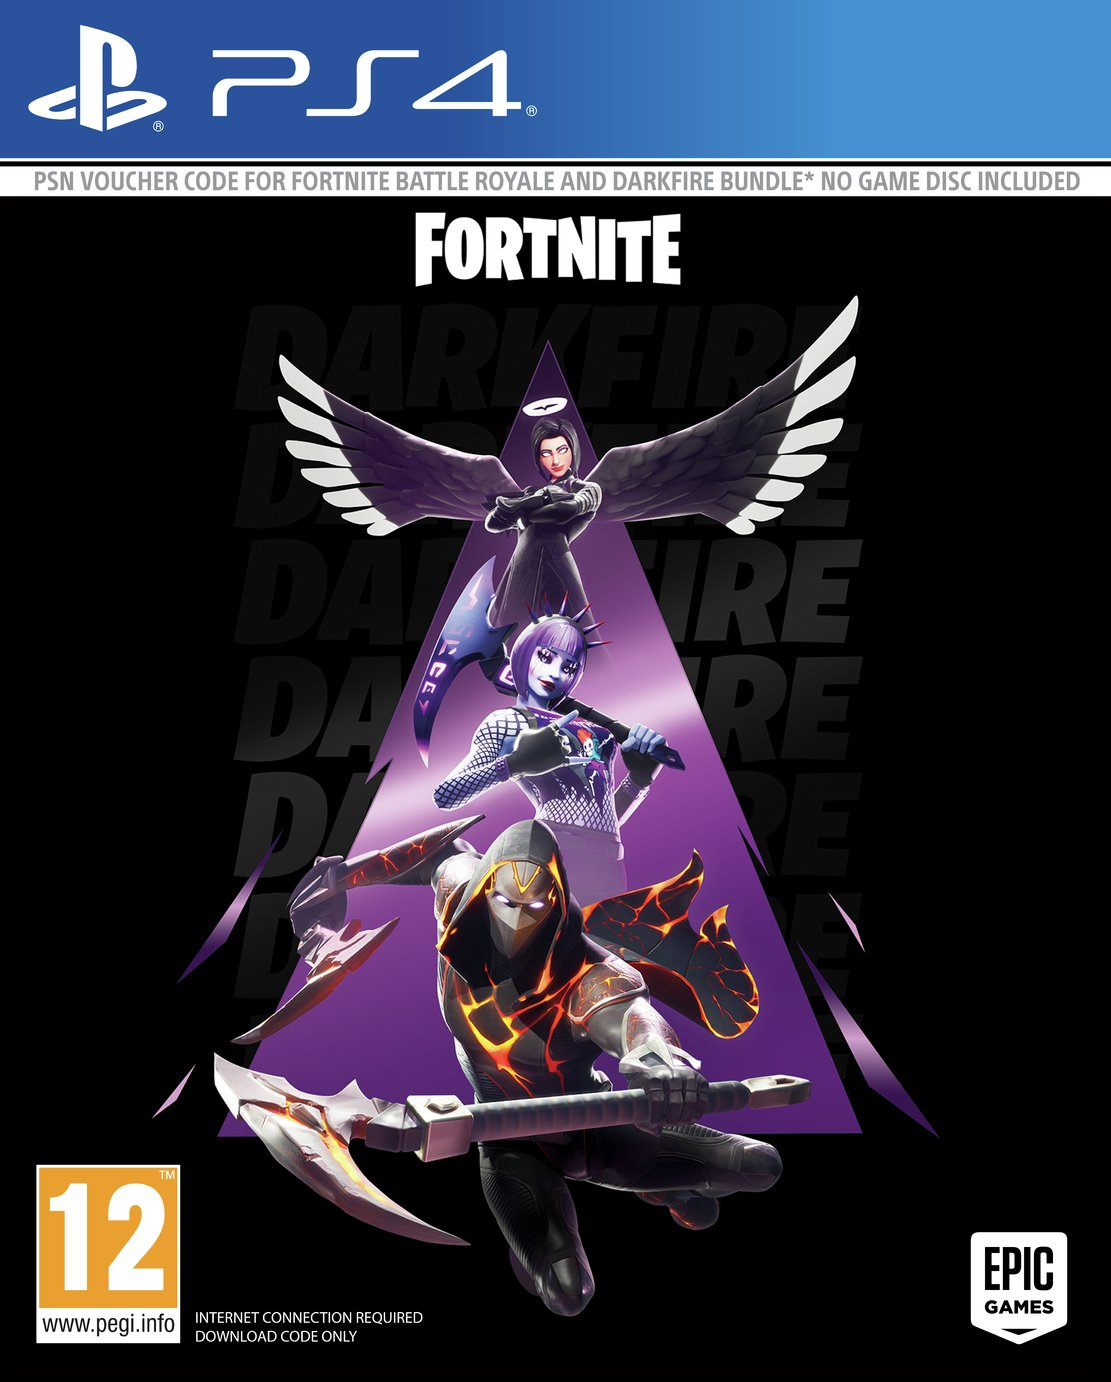 Fortnite Darkfire Bundle 2 PS4 Pre-Order Game